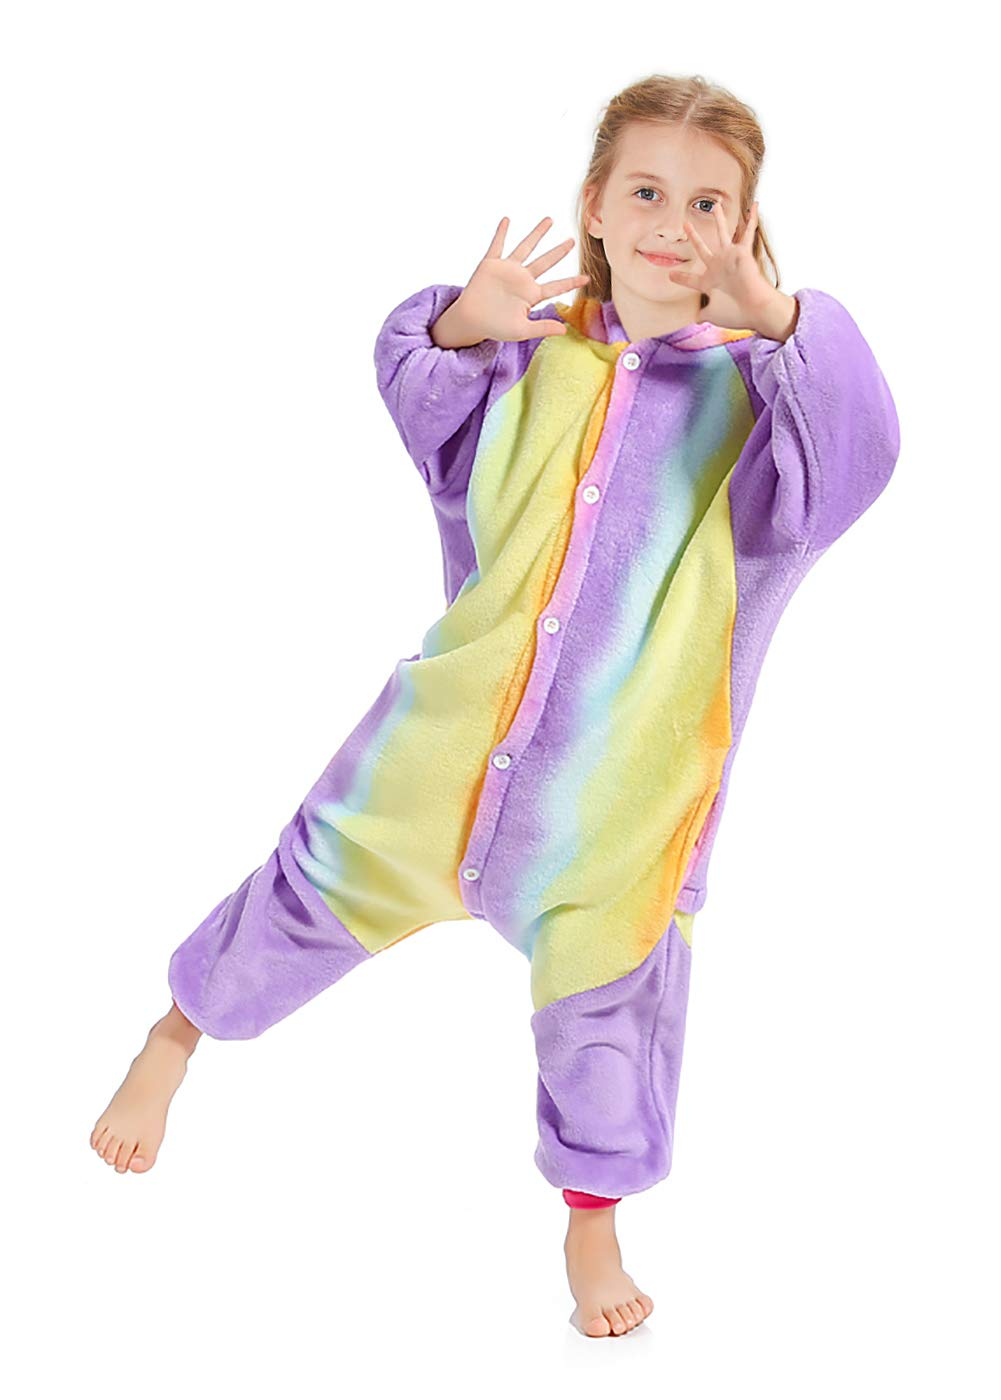 OPCOLV 5T 6T Girls Fleece Night Wear Bodysuit with Cute Tail Kids Cool Animal Pattern Warm Pajamas One-Piece Sleepsuit for Tiny Cosplay 5-7 Years by OPCOLV